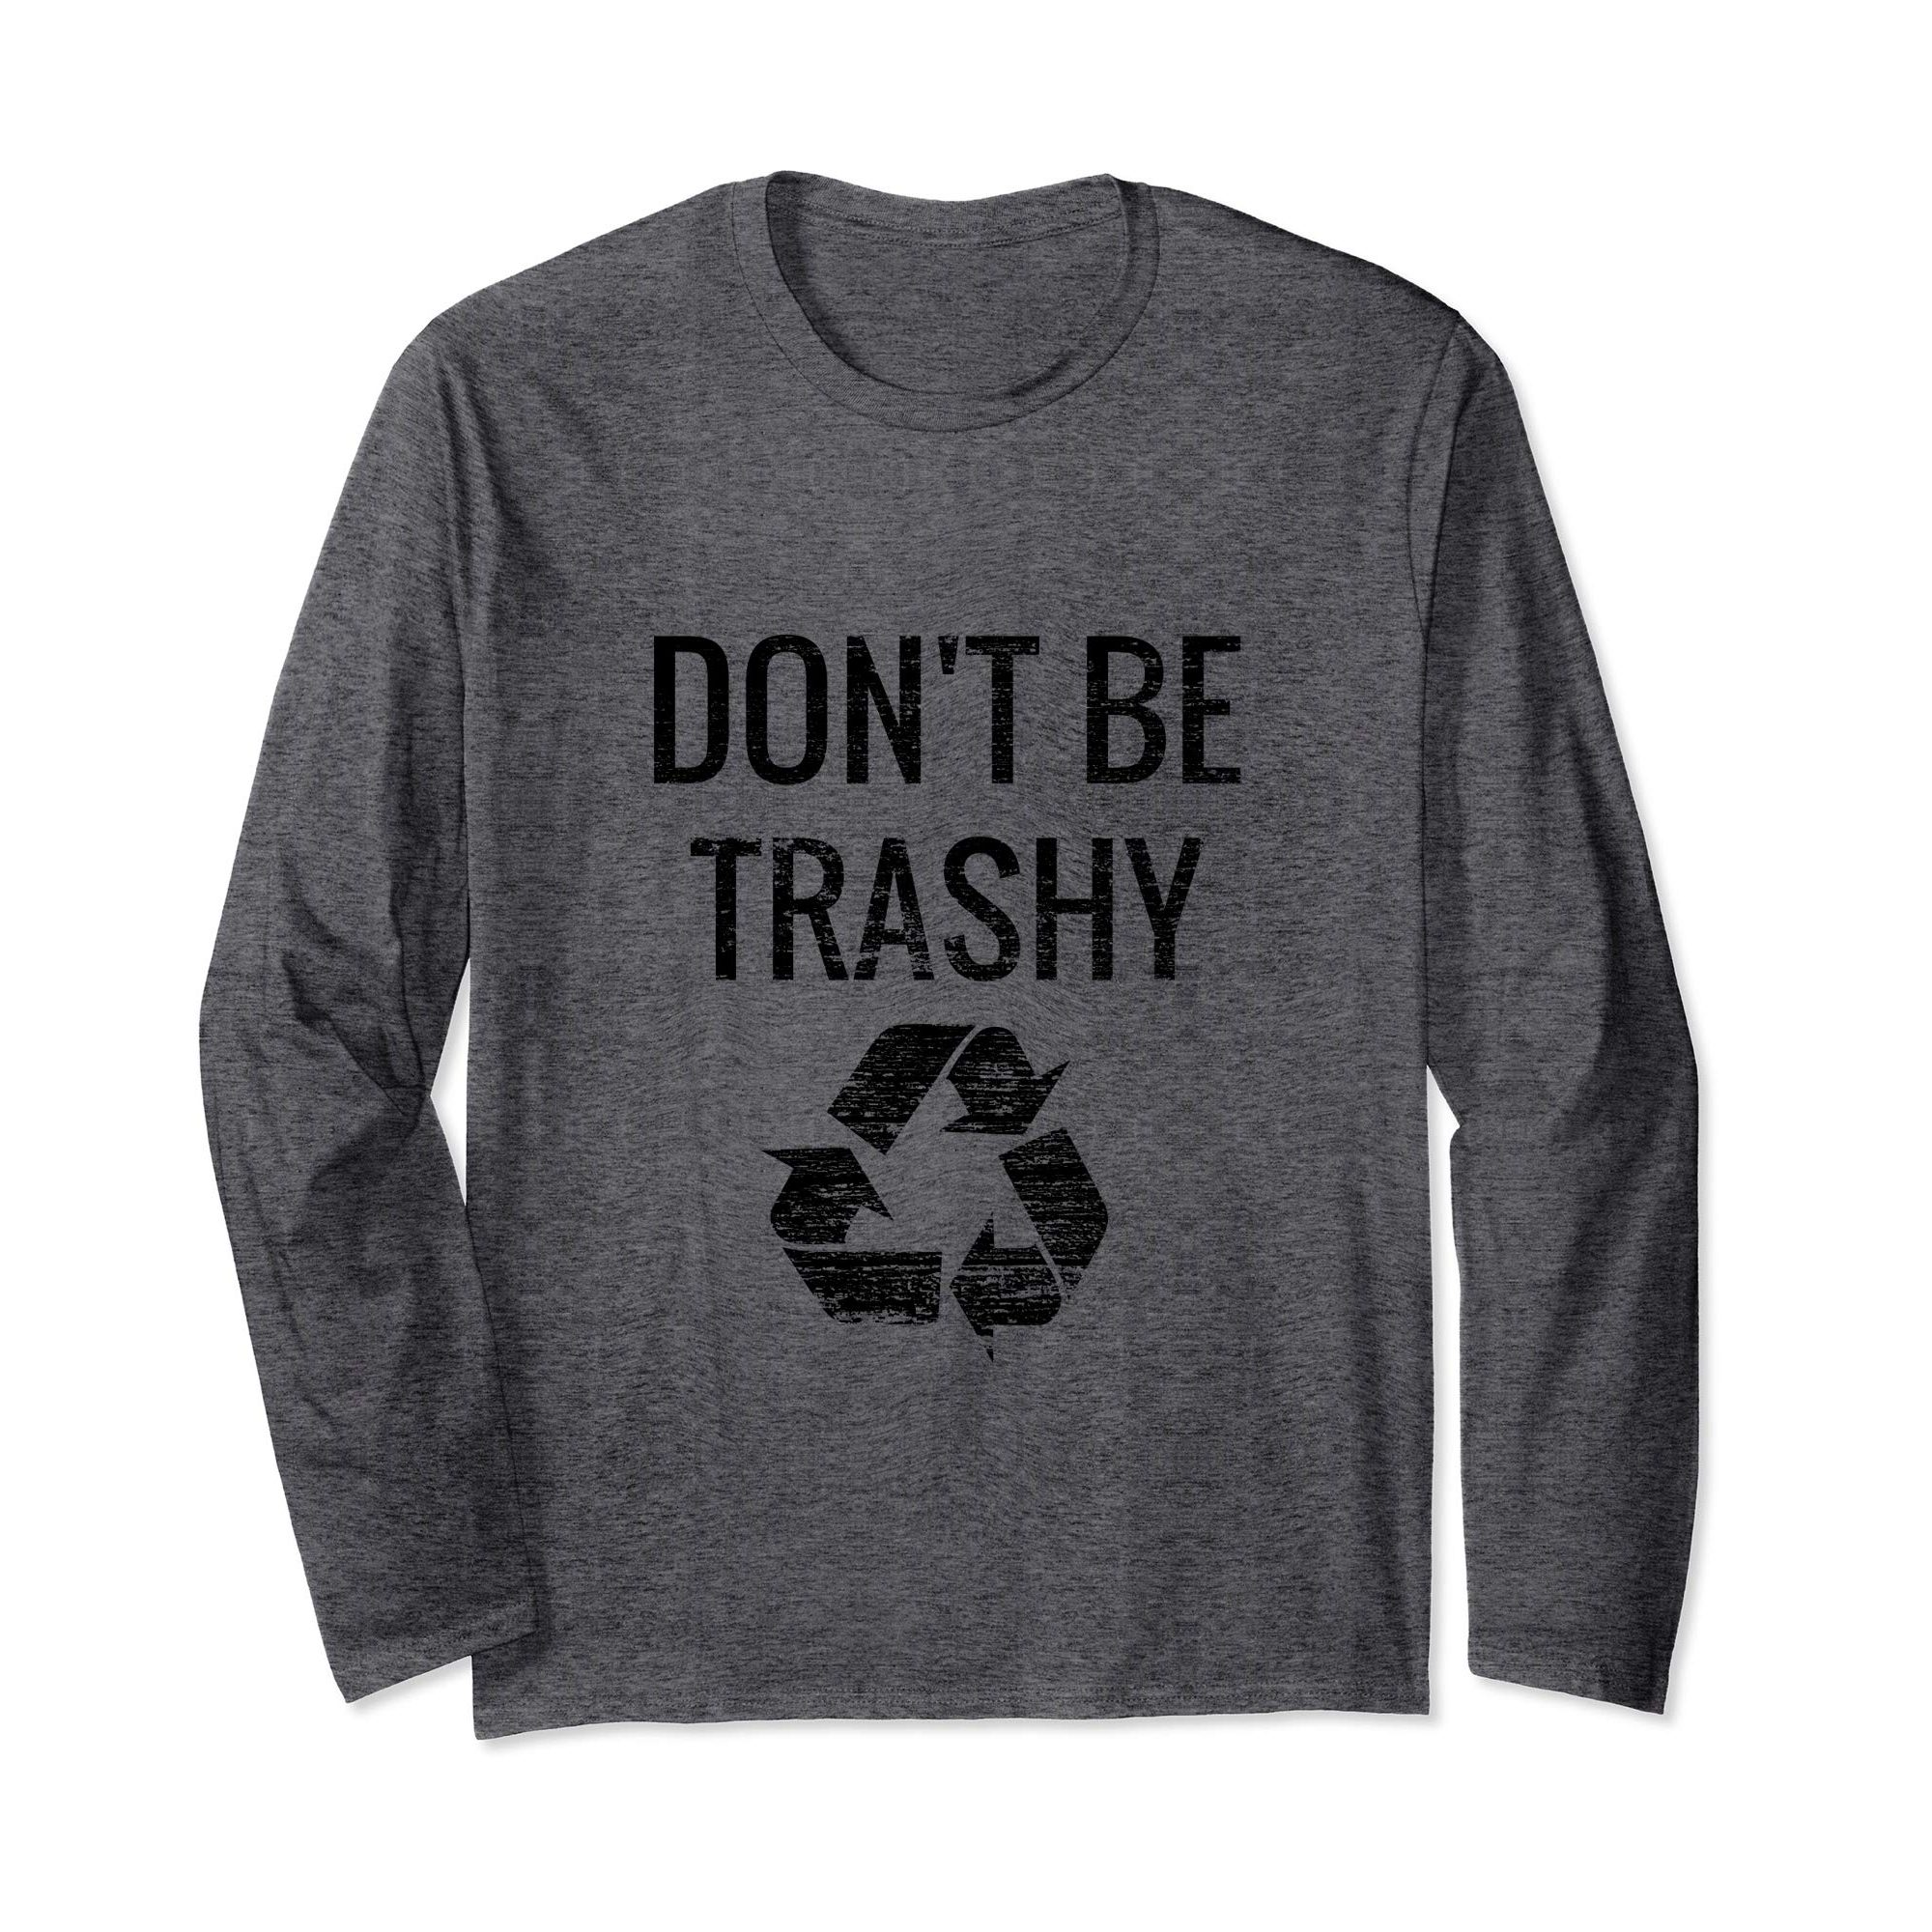 """LONG SLEEVE T-SHIRT WITH SLOGAN """"DON'T BE TRASHY"""" RECYCLE GRAPHIC"""